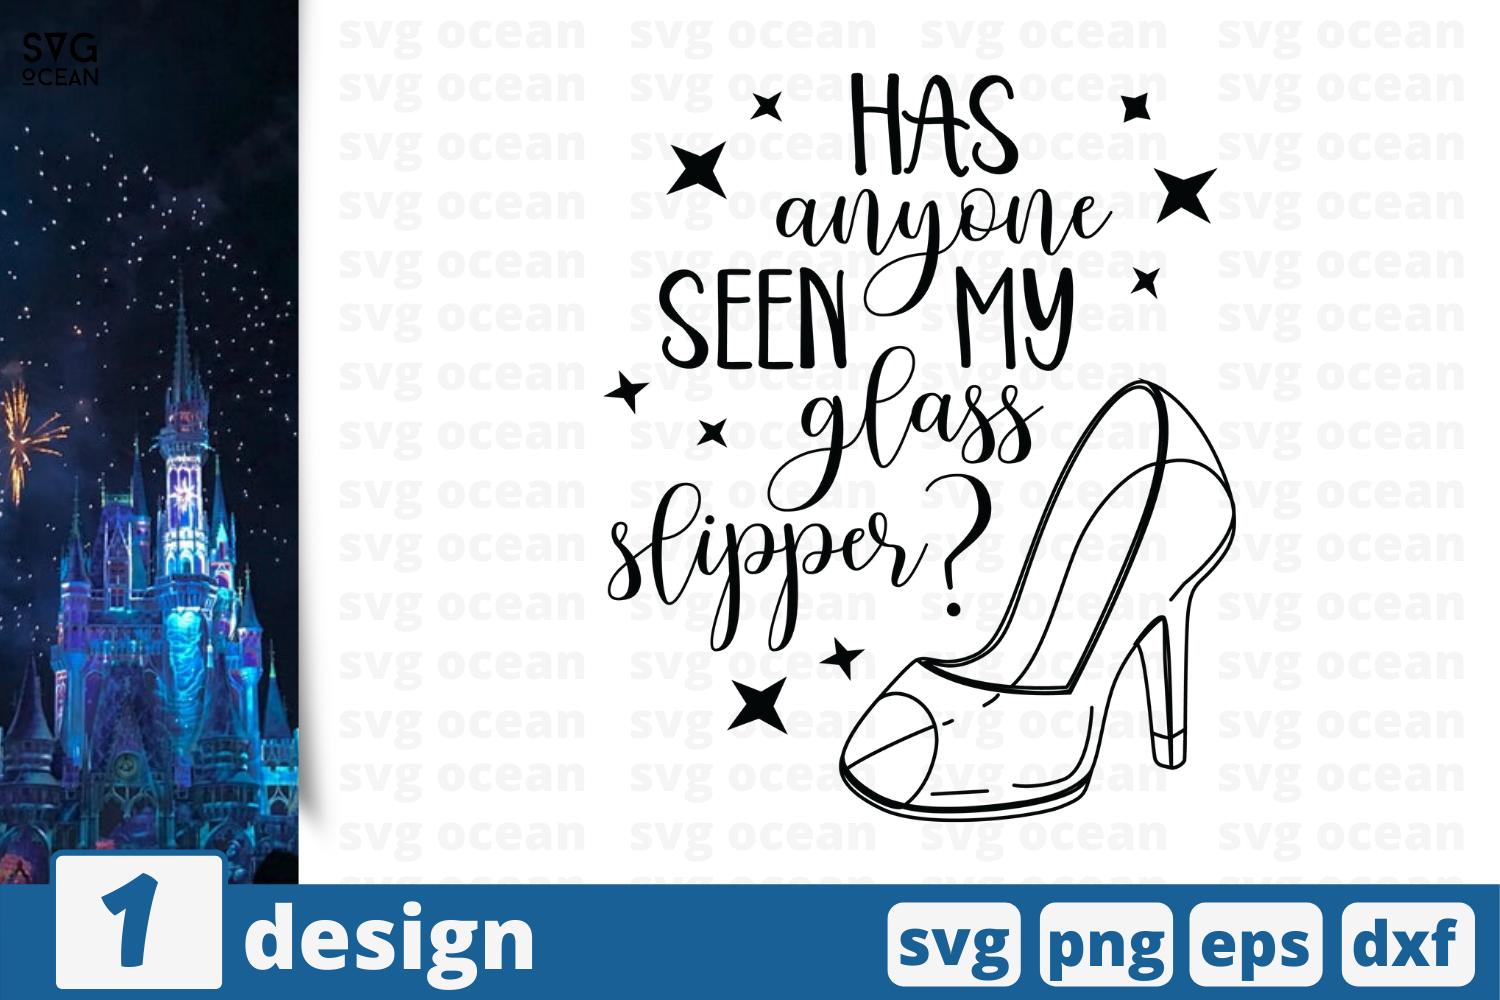 1 Glass Slipper Svg Bundle Story Cricut Svg By Svgocean